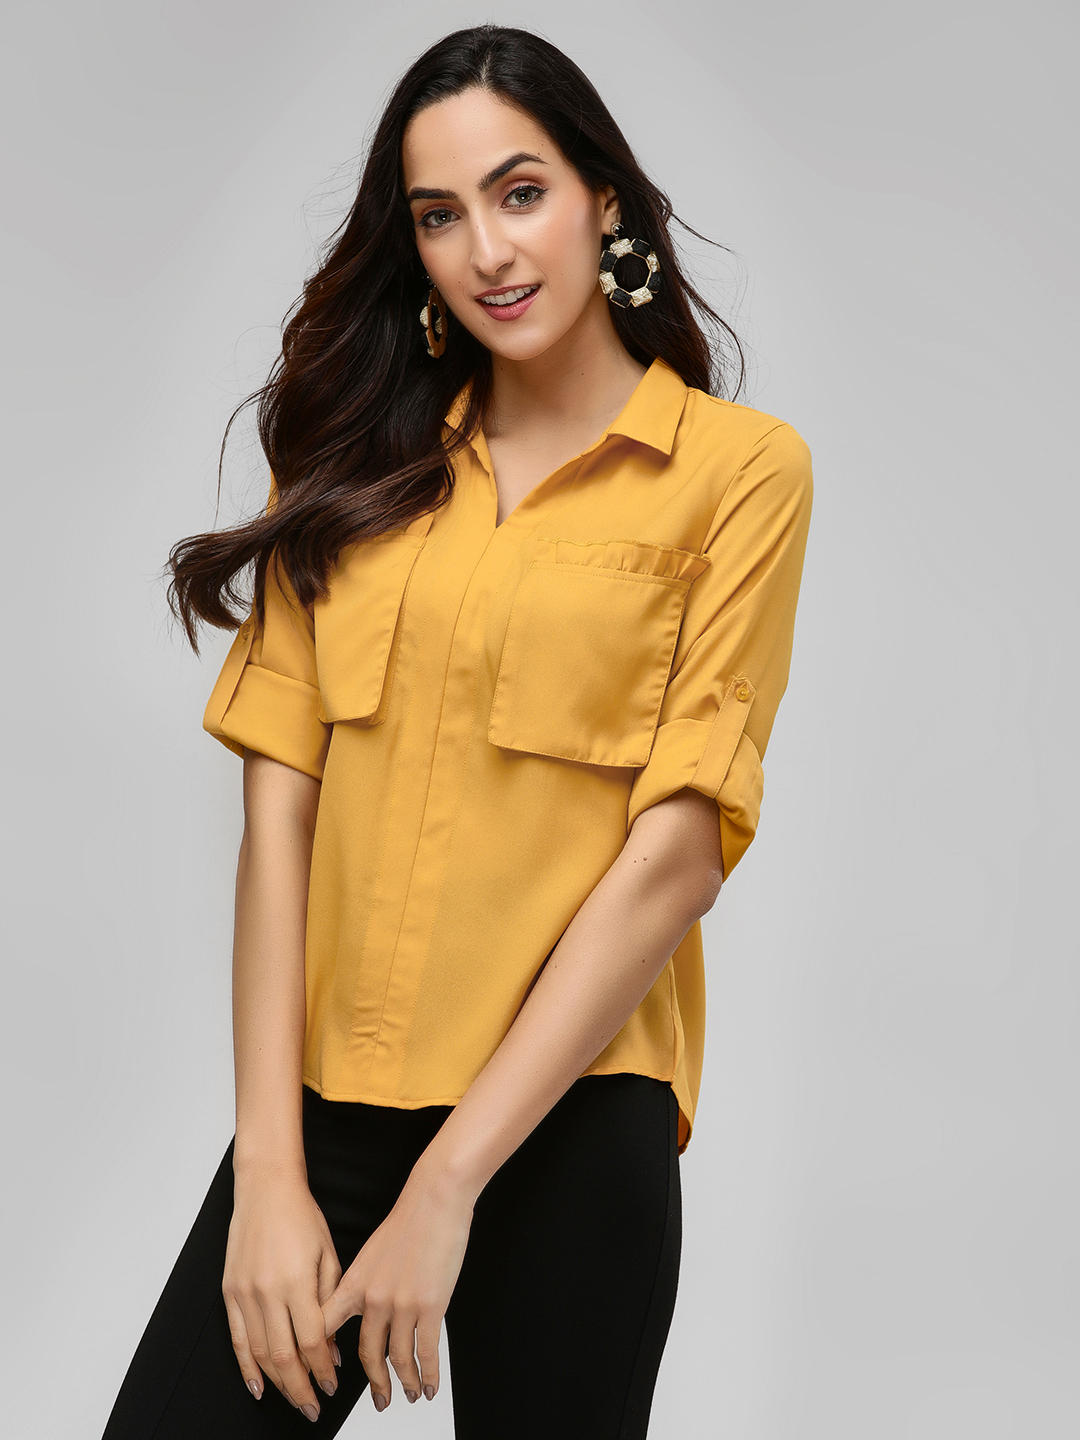 Street9 Yellow Top With Ruffle Detail On Pockets 1